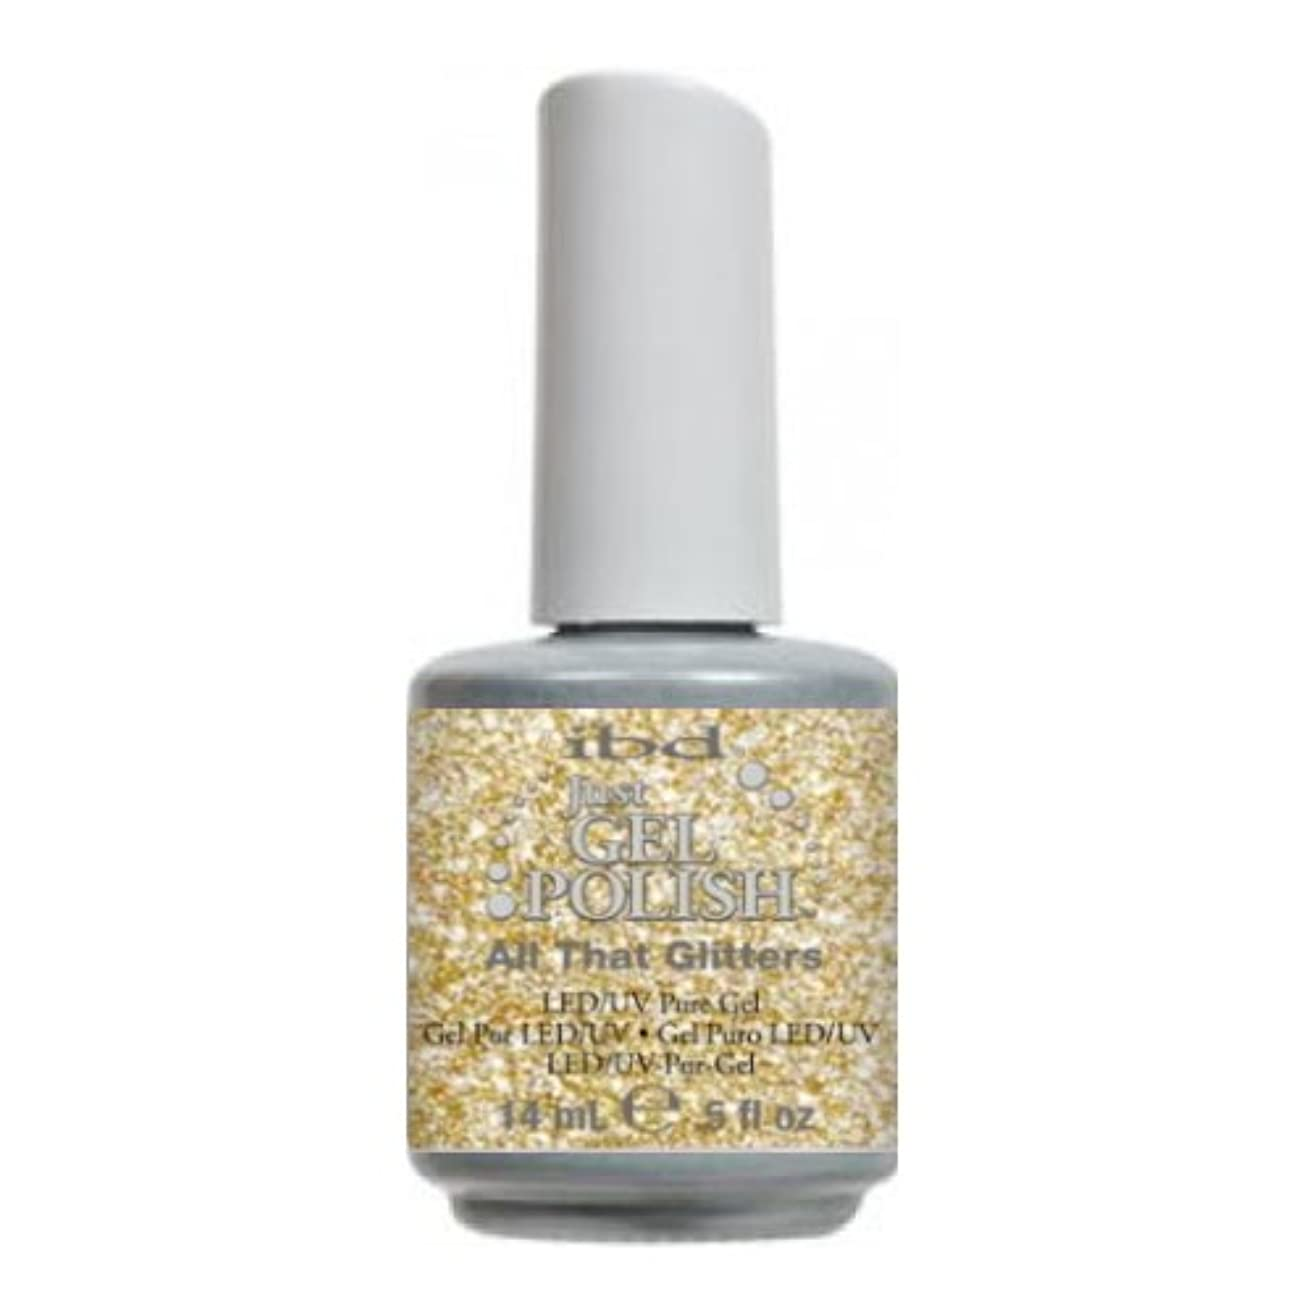 傀儡のため最初に(3 Pack) ibd Just Gel Polish - All That Glitters (並行輸入品)